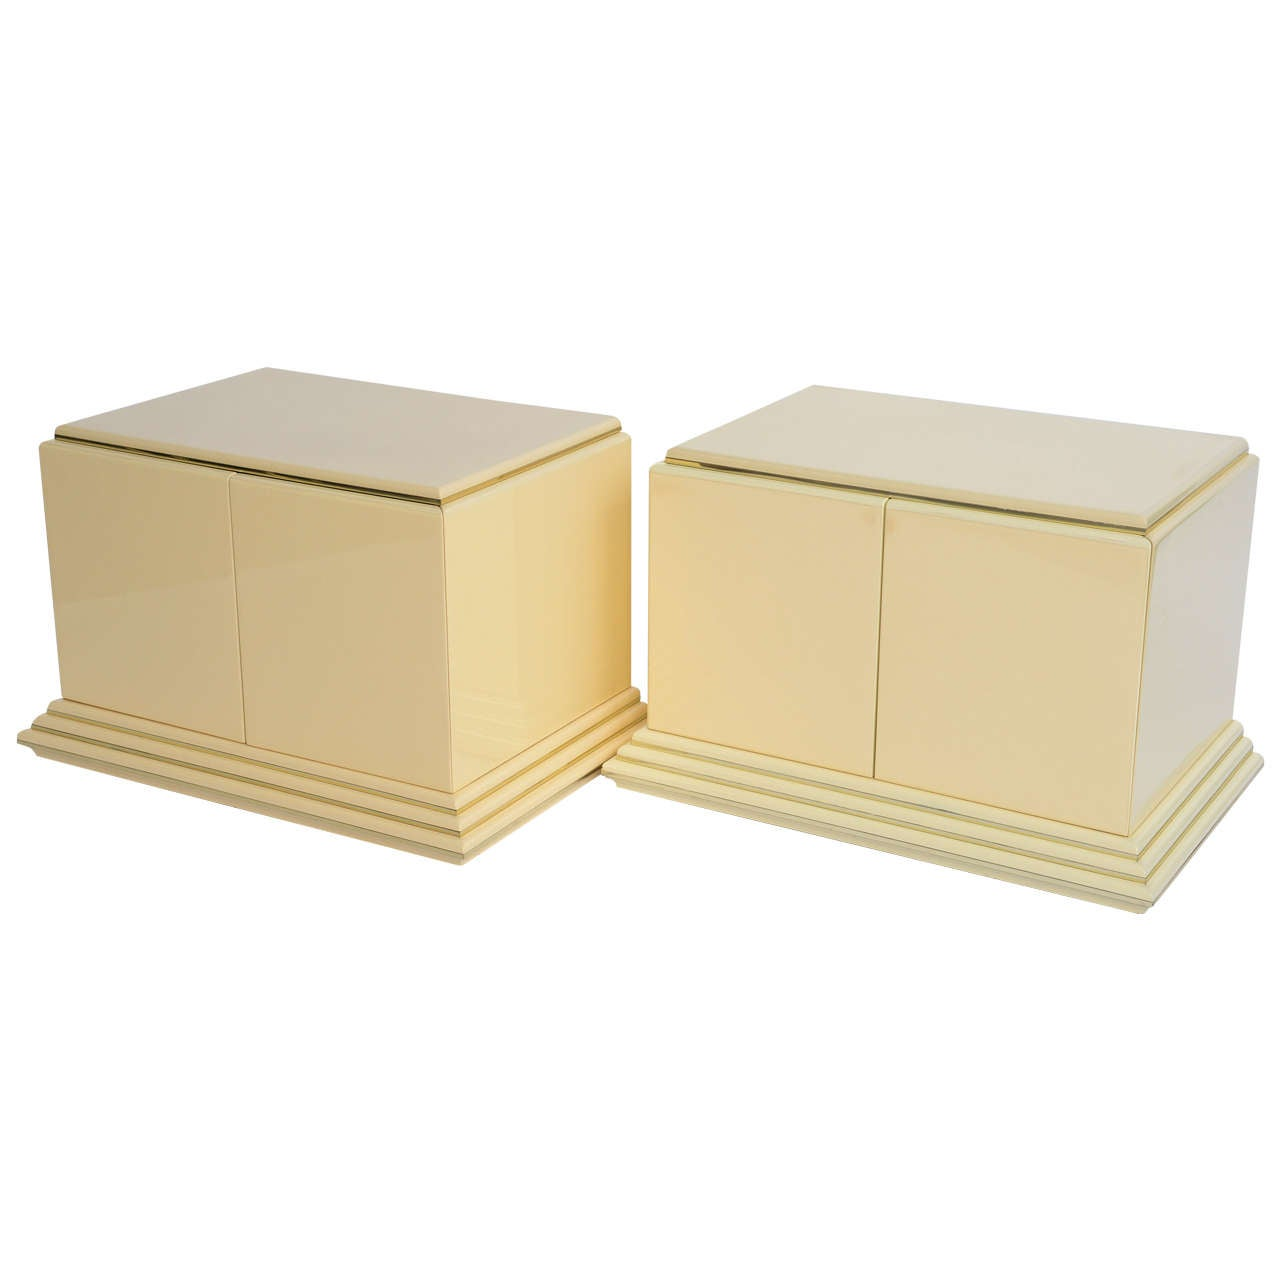 Pair of Rougier Streamline Moderne Style Cream Lacquer Bedside Tables For Sale